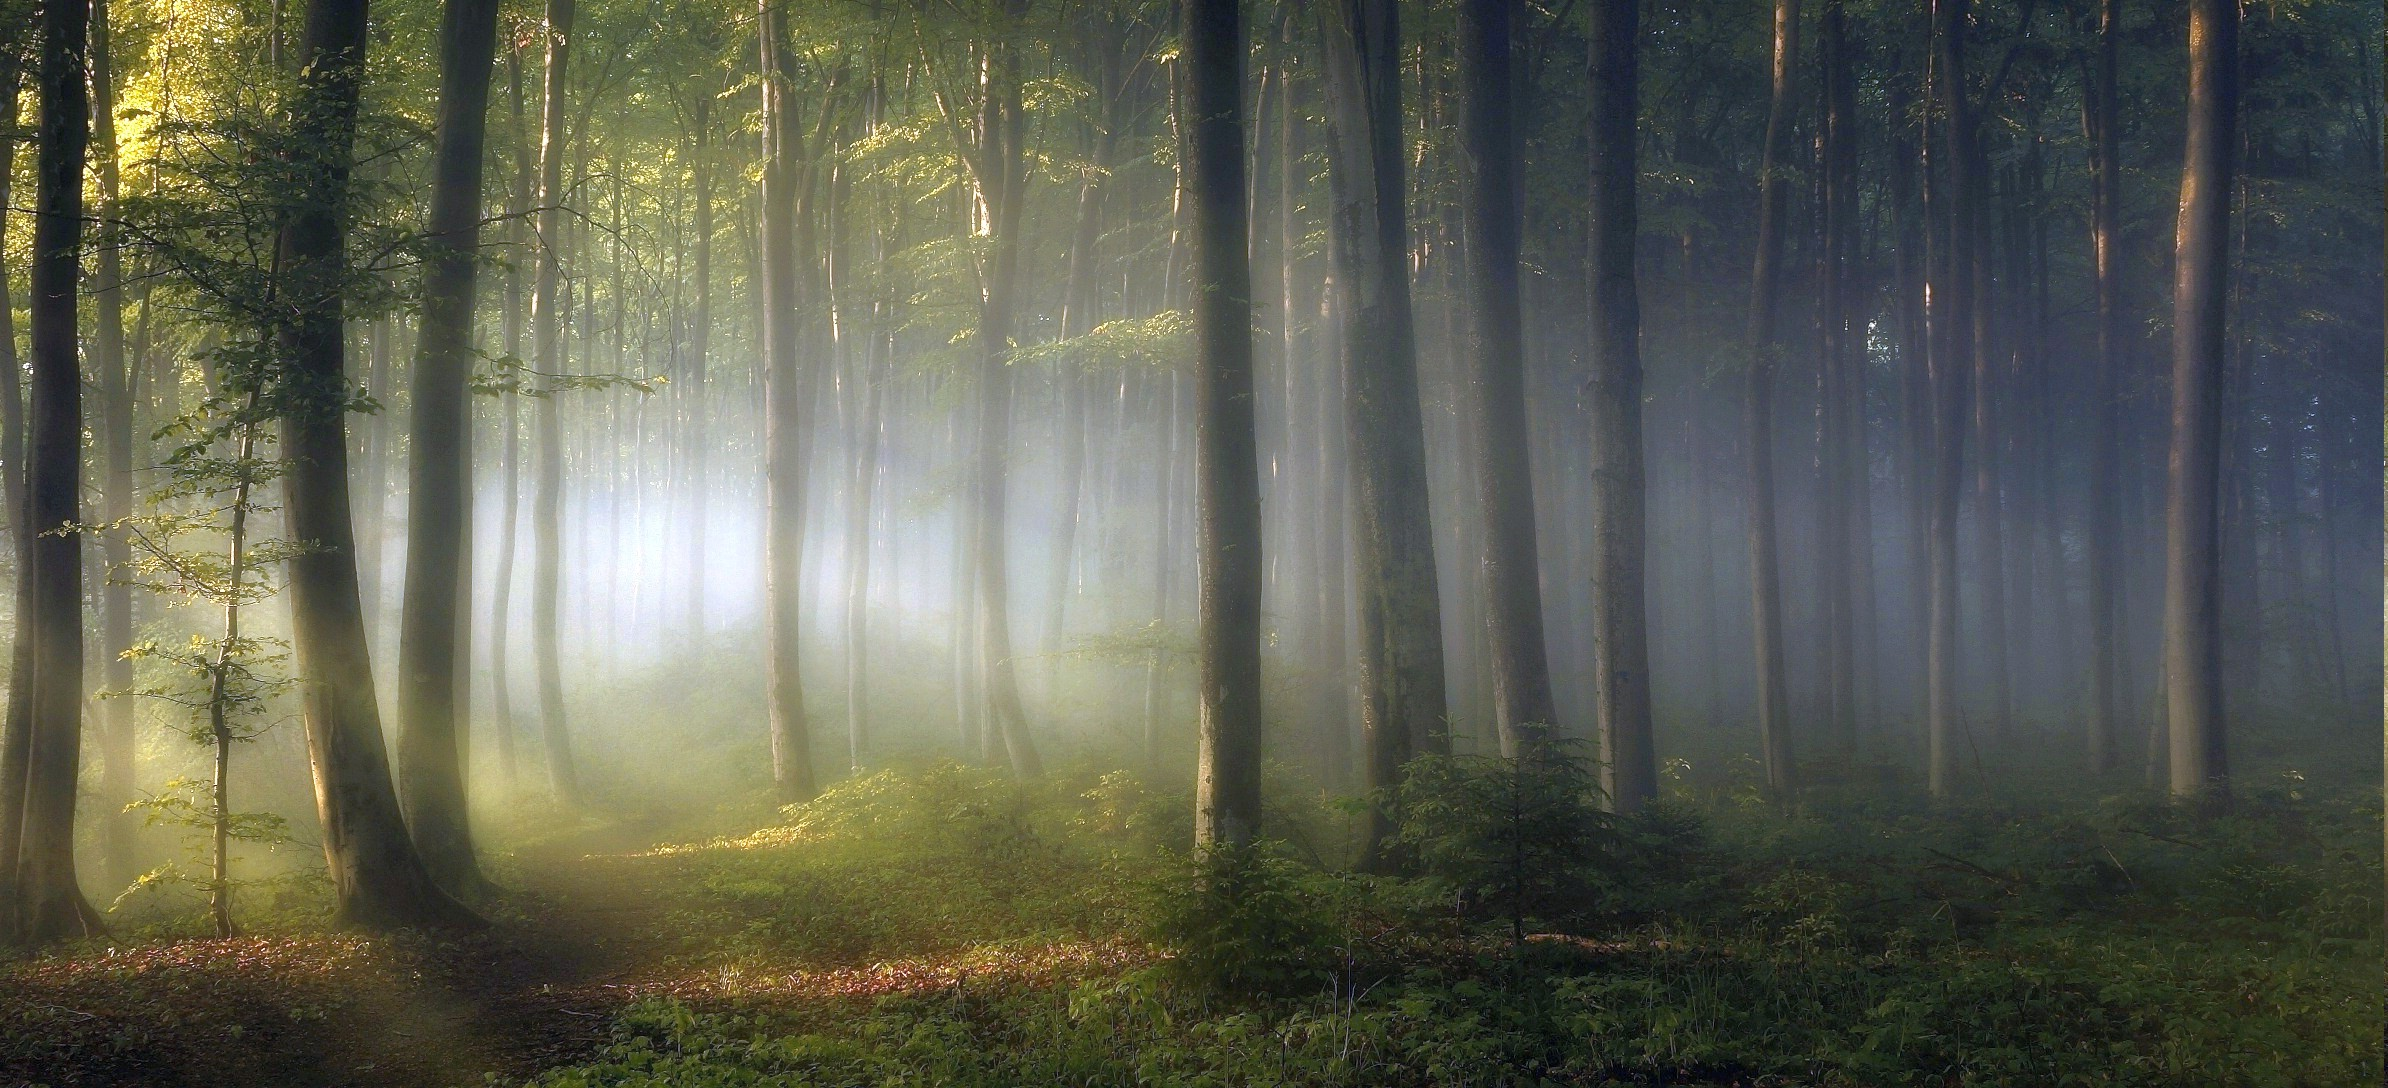 1280x800 Fall Wallpaper Morning Forest Shrubs Sunrise Trees Path Mist